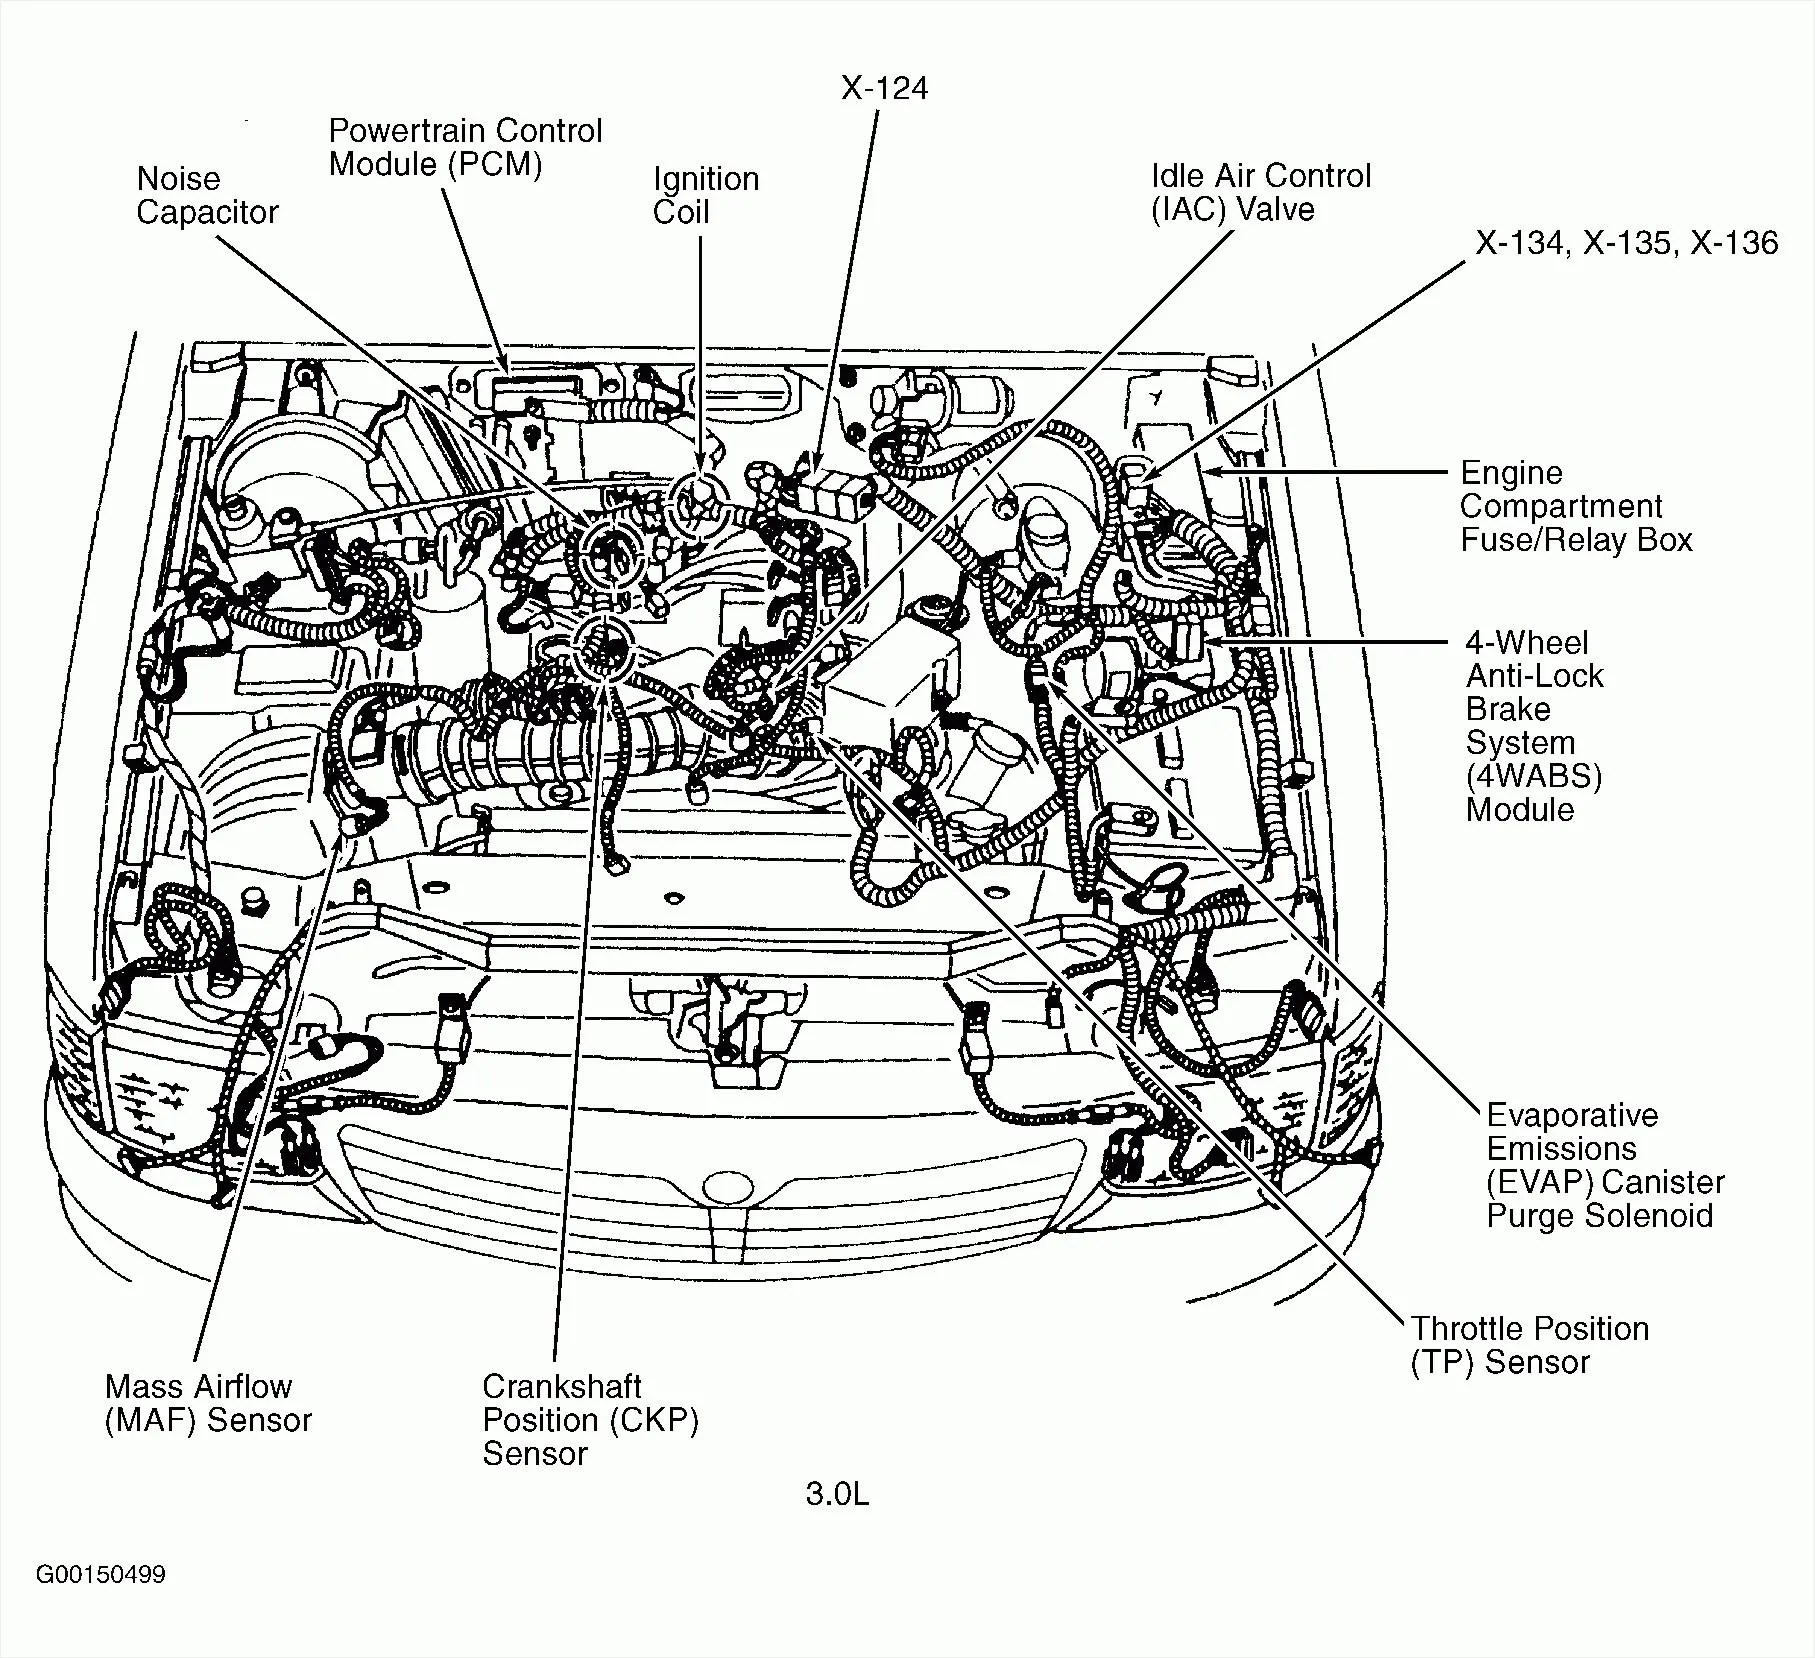 hight resolution of 2000 honda accord 2 3 vtec engine diagram on plymouth engine coolant 1999 honda accord lx engine diagram 1999 accord engine diagram